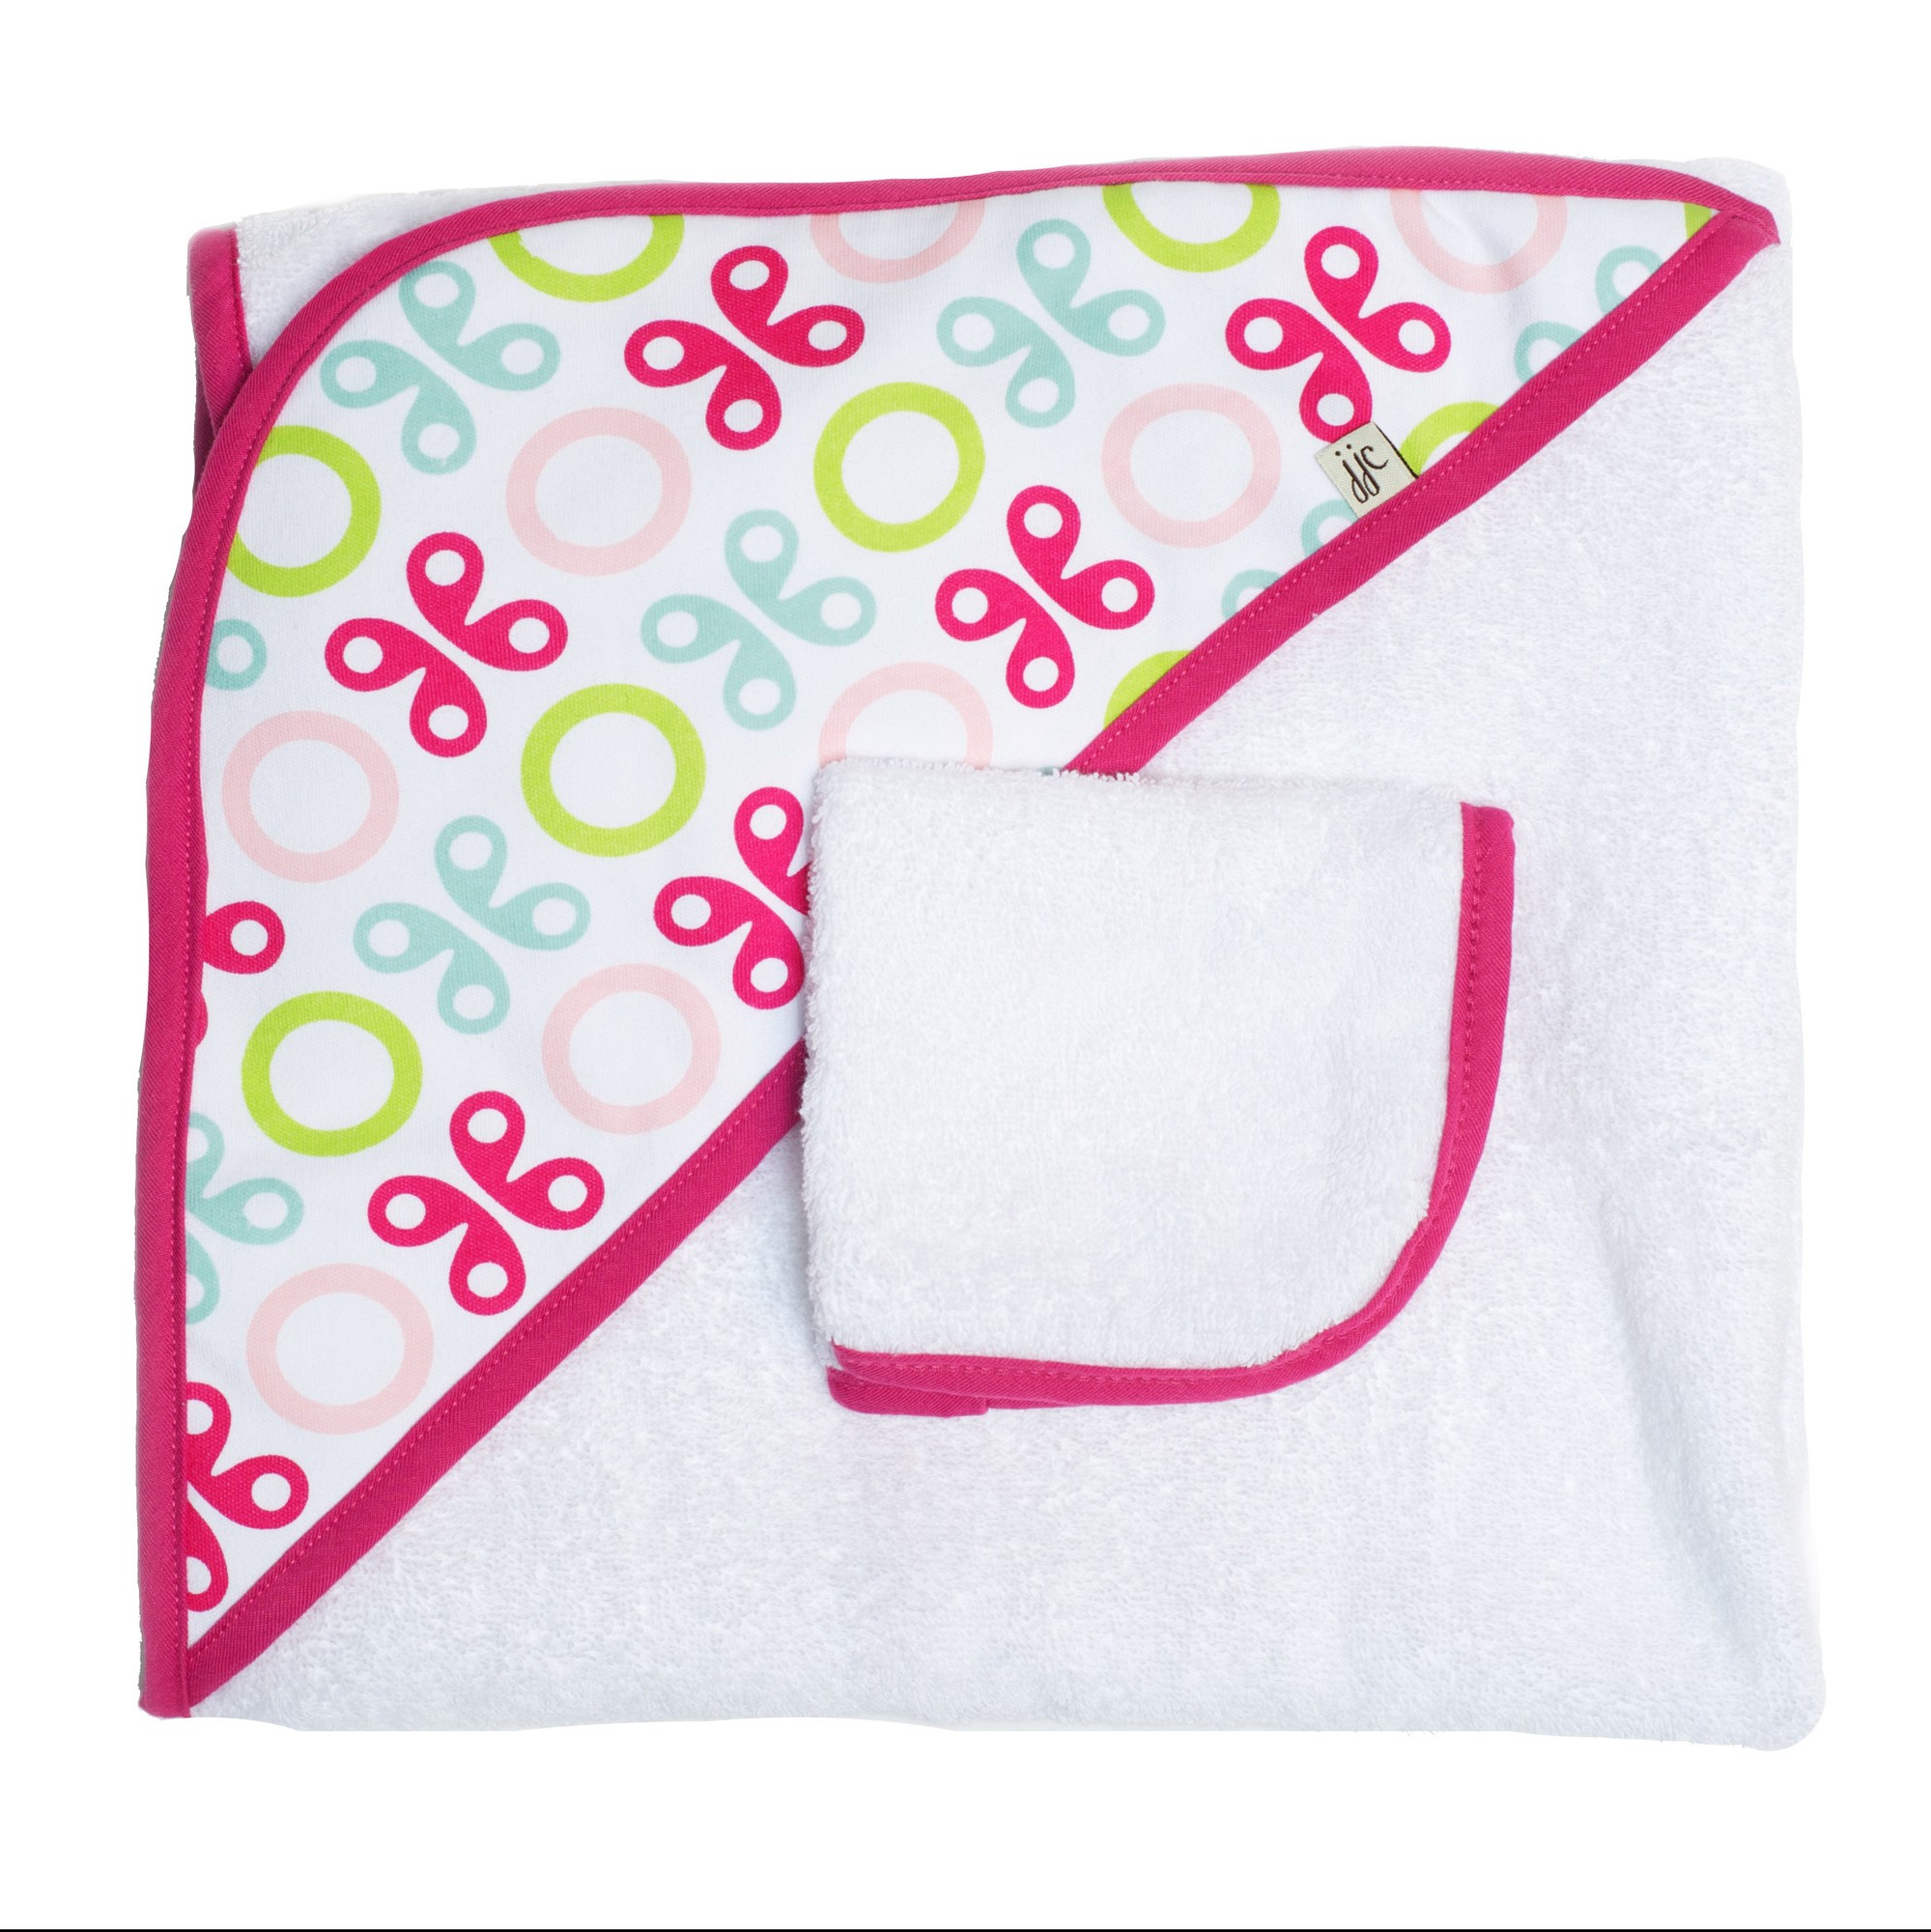 JJ COLE Hooded Towel - Pink Butterfly